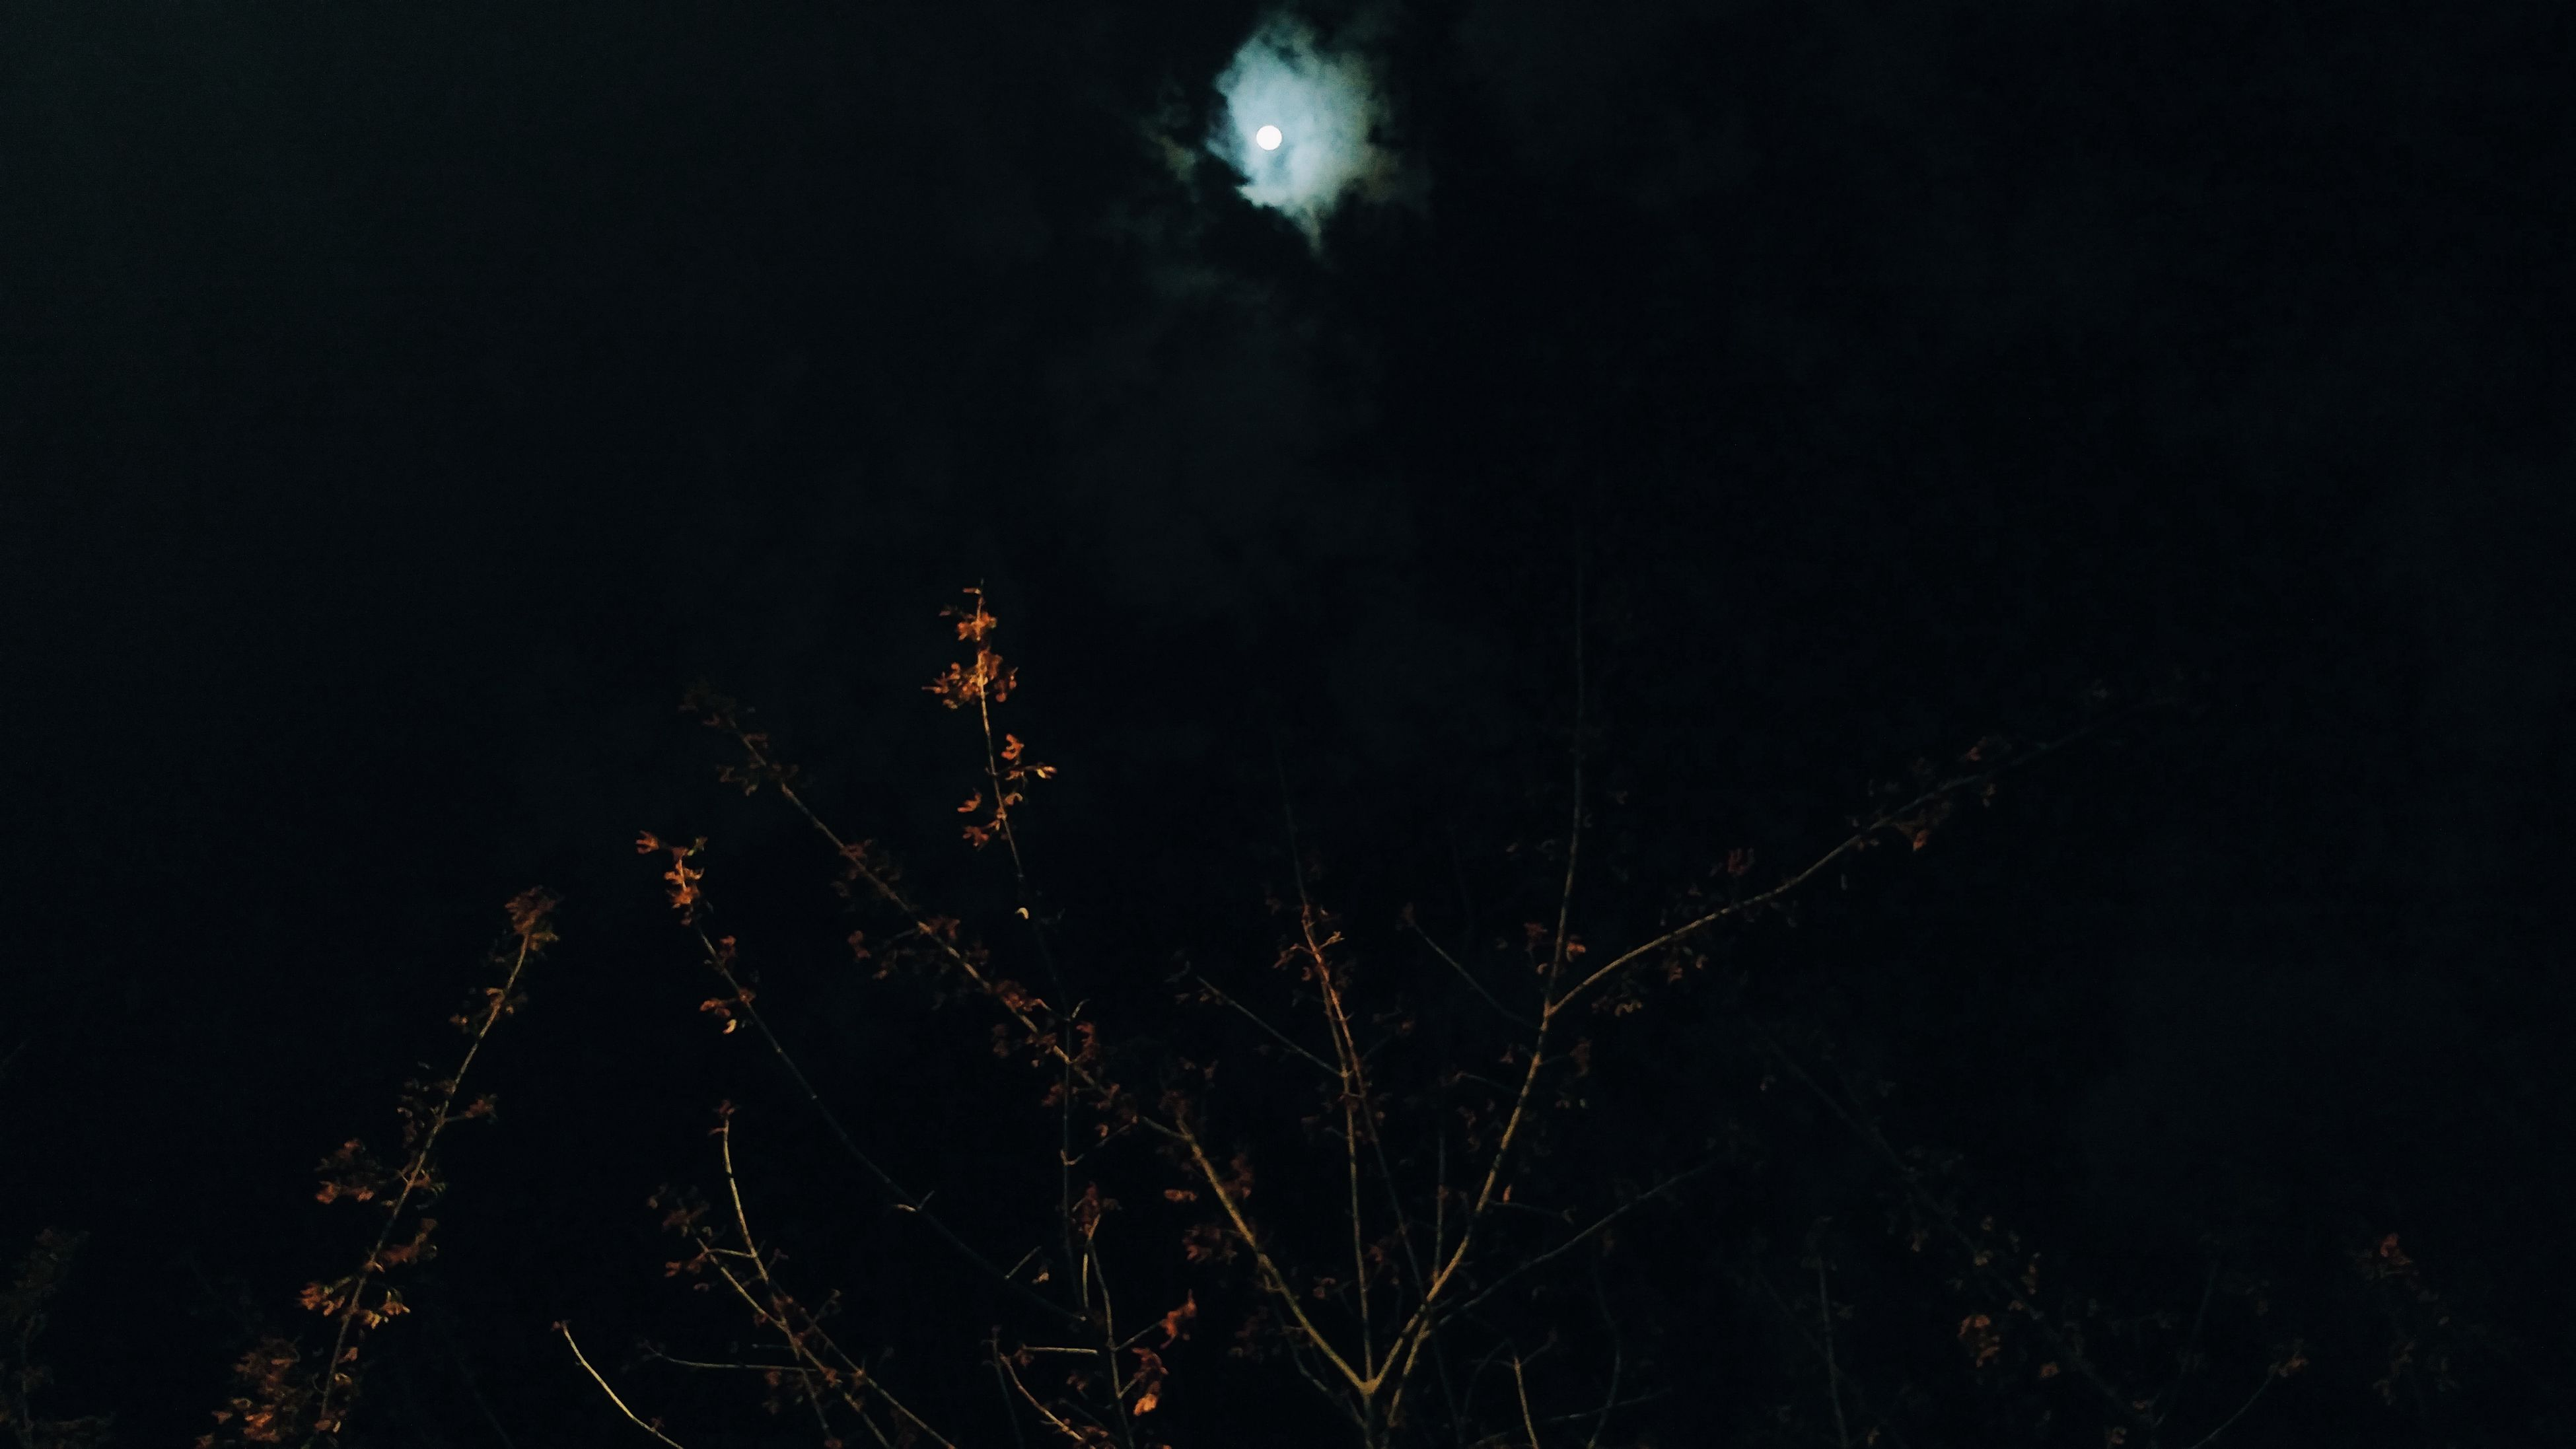 night, nature, no people, low angle view, outdoors, tranquility, beauty in nature, moon, tree, growth, sky, branch, black background, close-up, astronomy